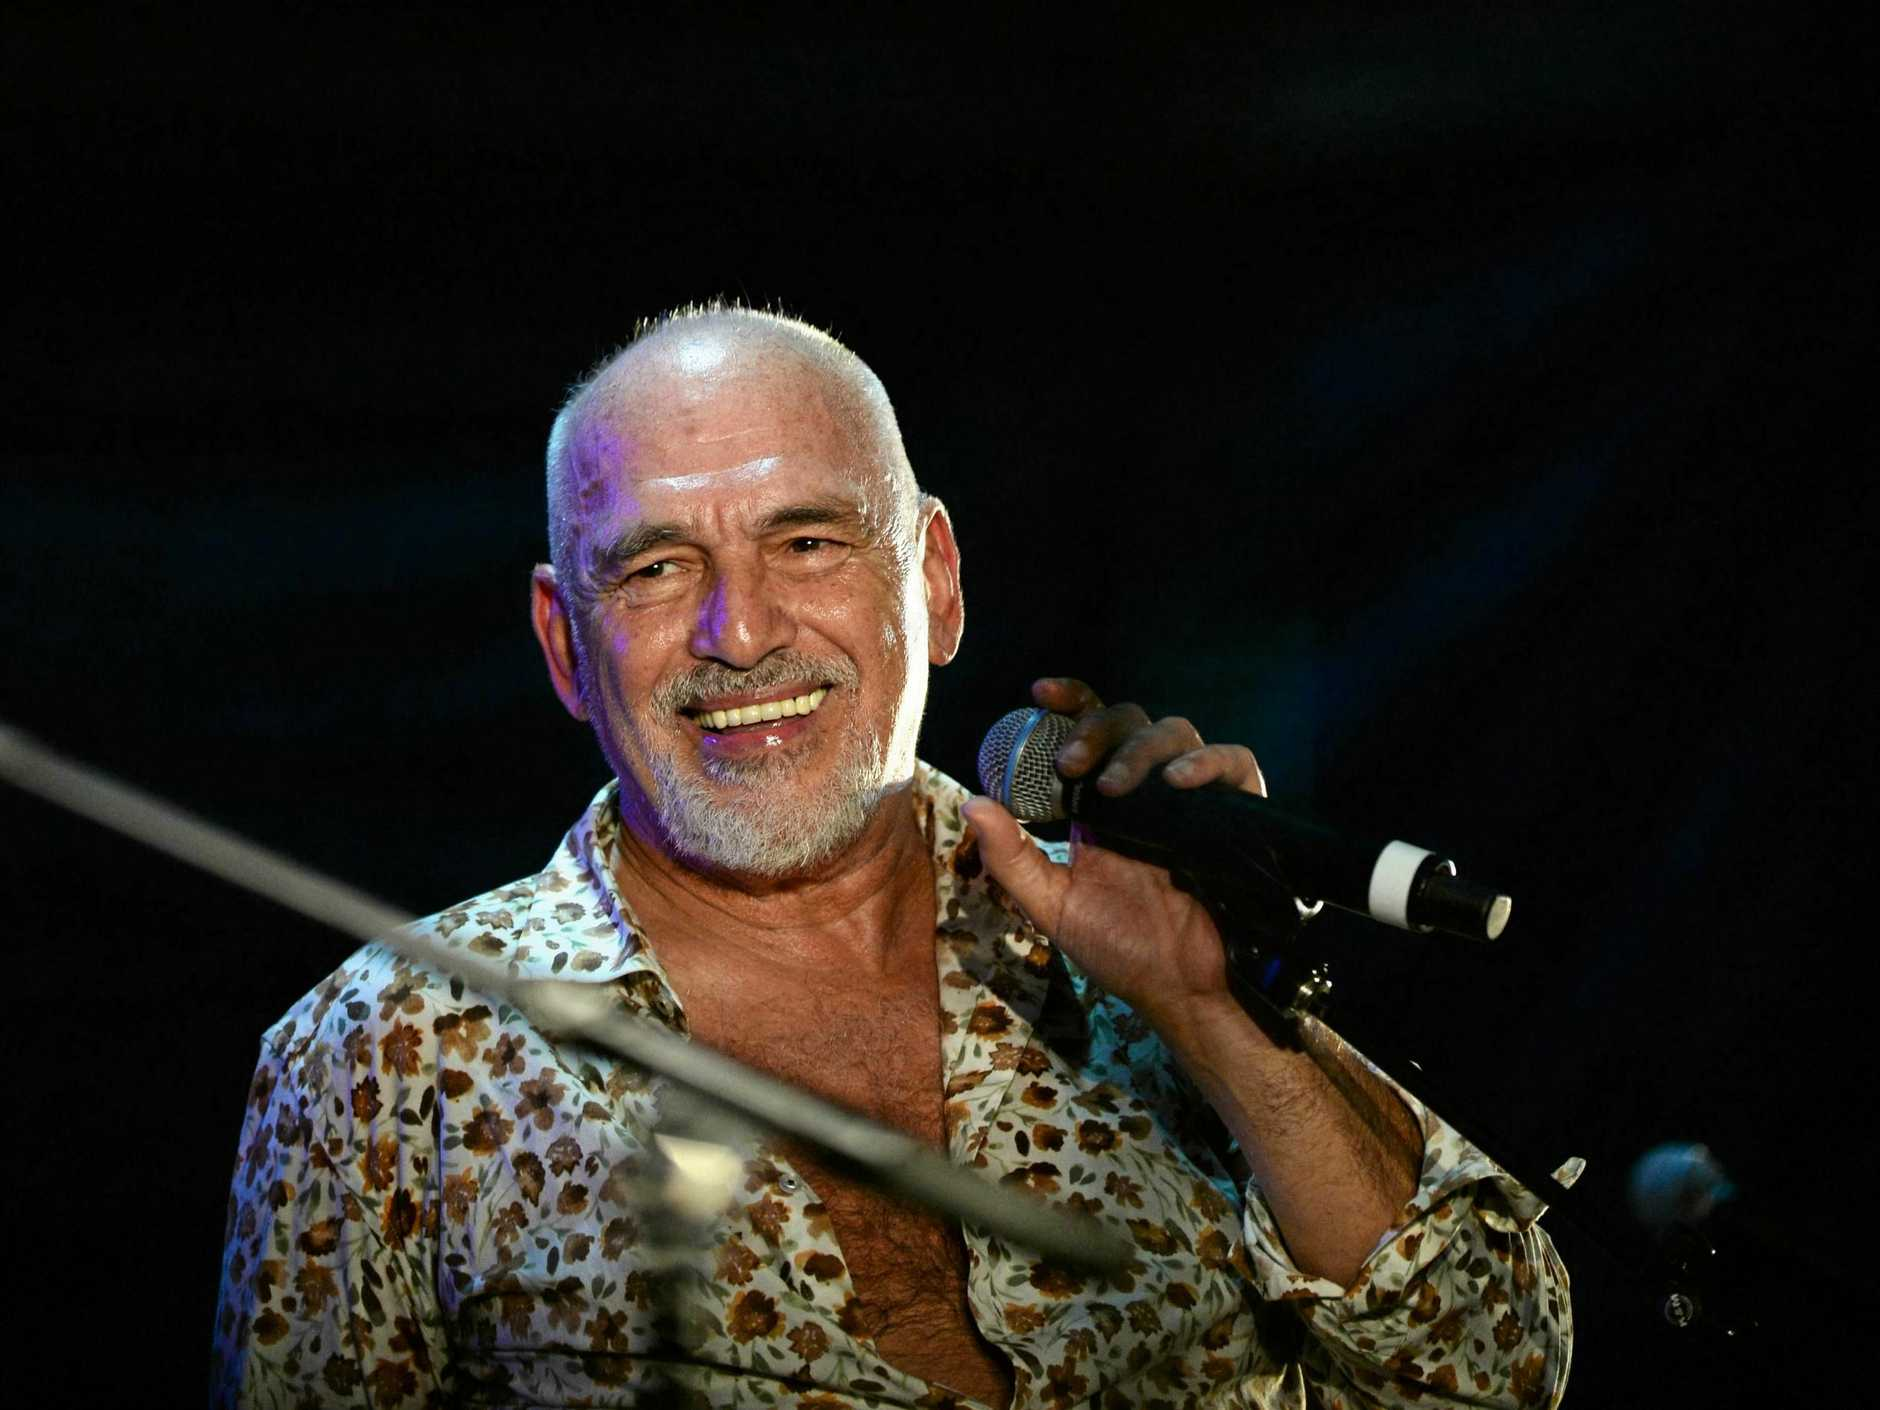 HEADLINERS: Joe Camilleri and The Black Sorrows are set to headline the Agnes Water Blues, Roots and Rock Festival.